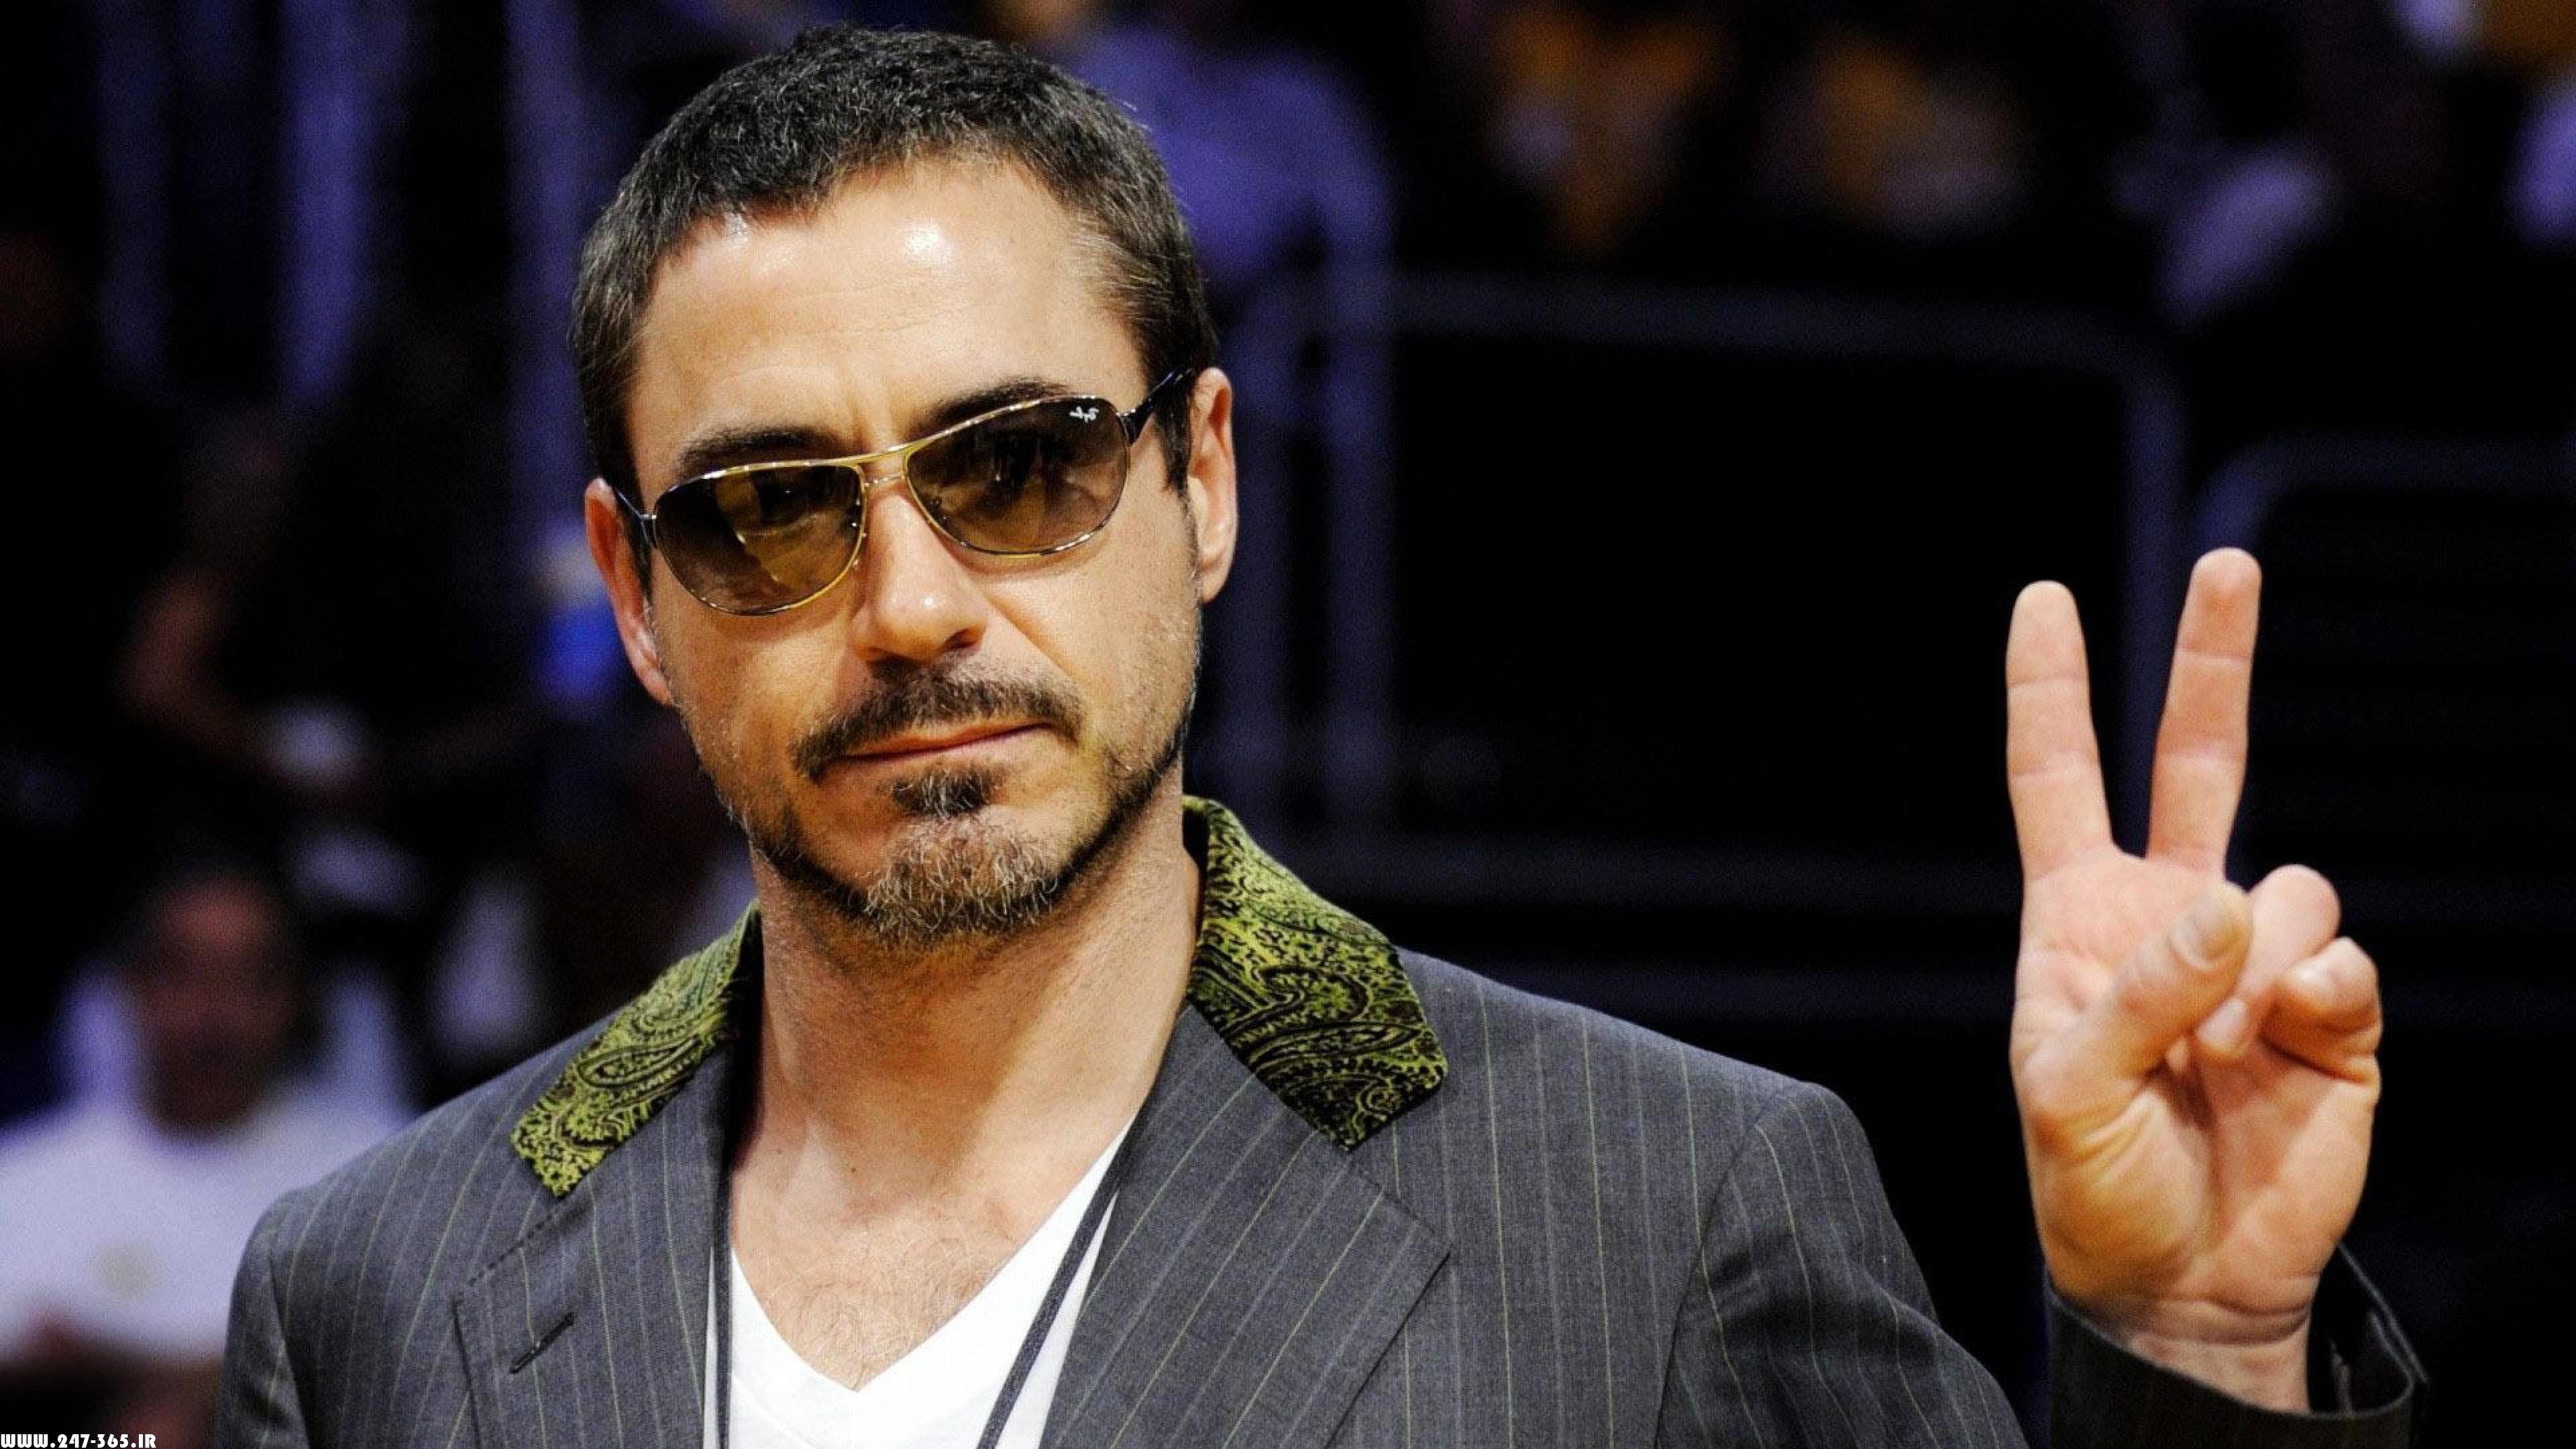 http://dl.247-365.ir/pic/celebrity/robert_downey_jr_2/Robert_Downey_Jr_2_04.jpg